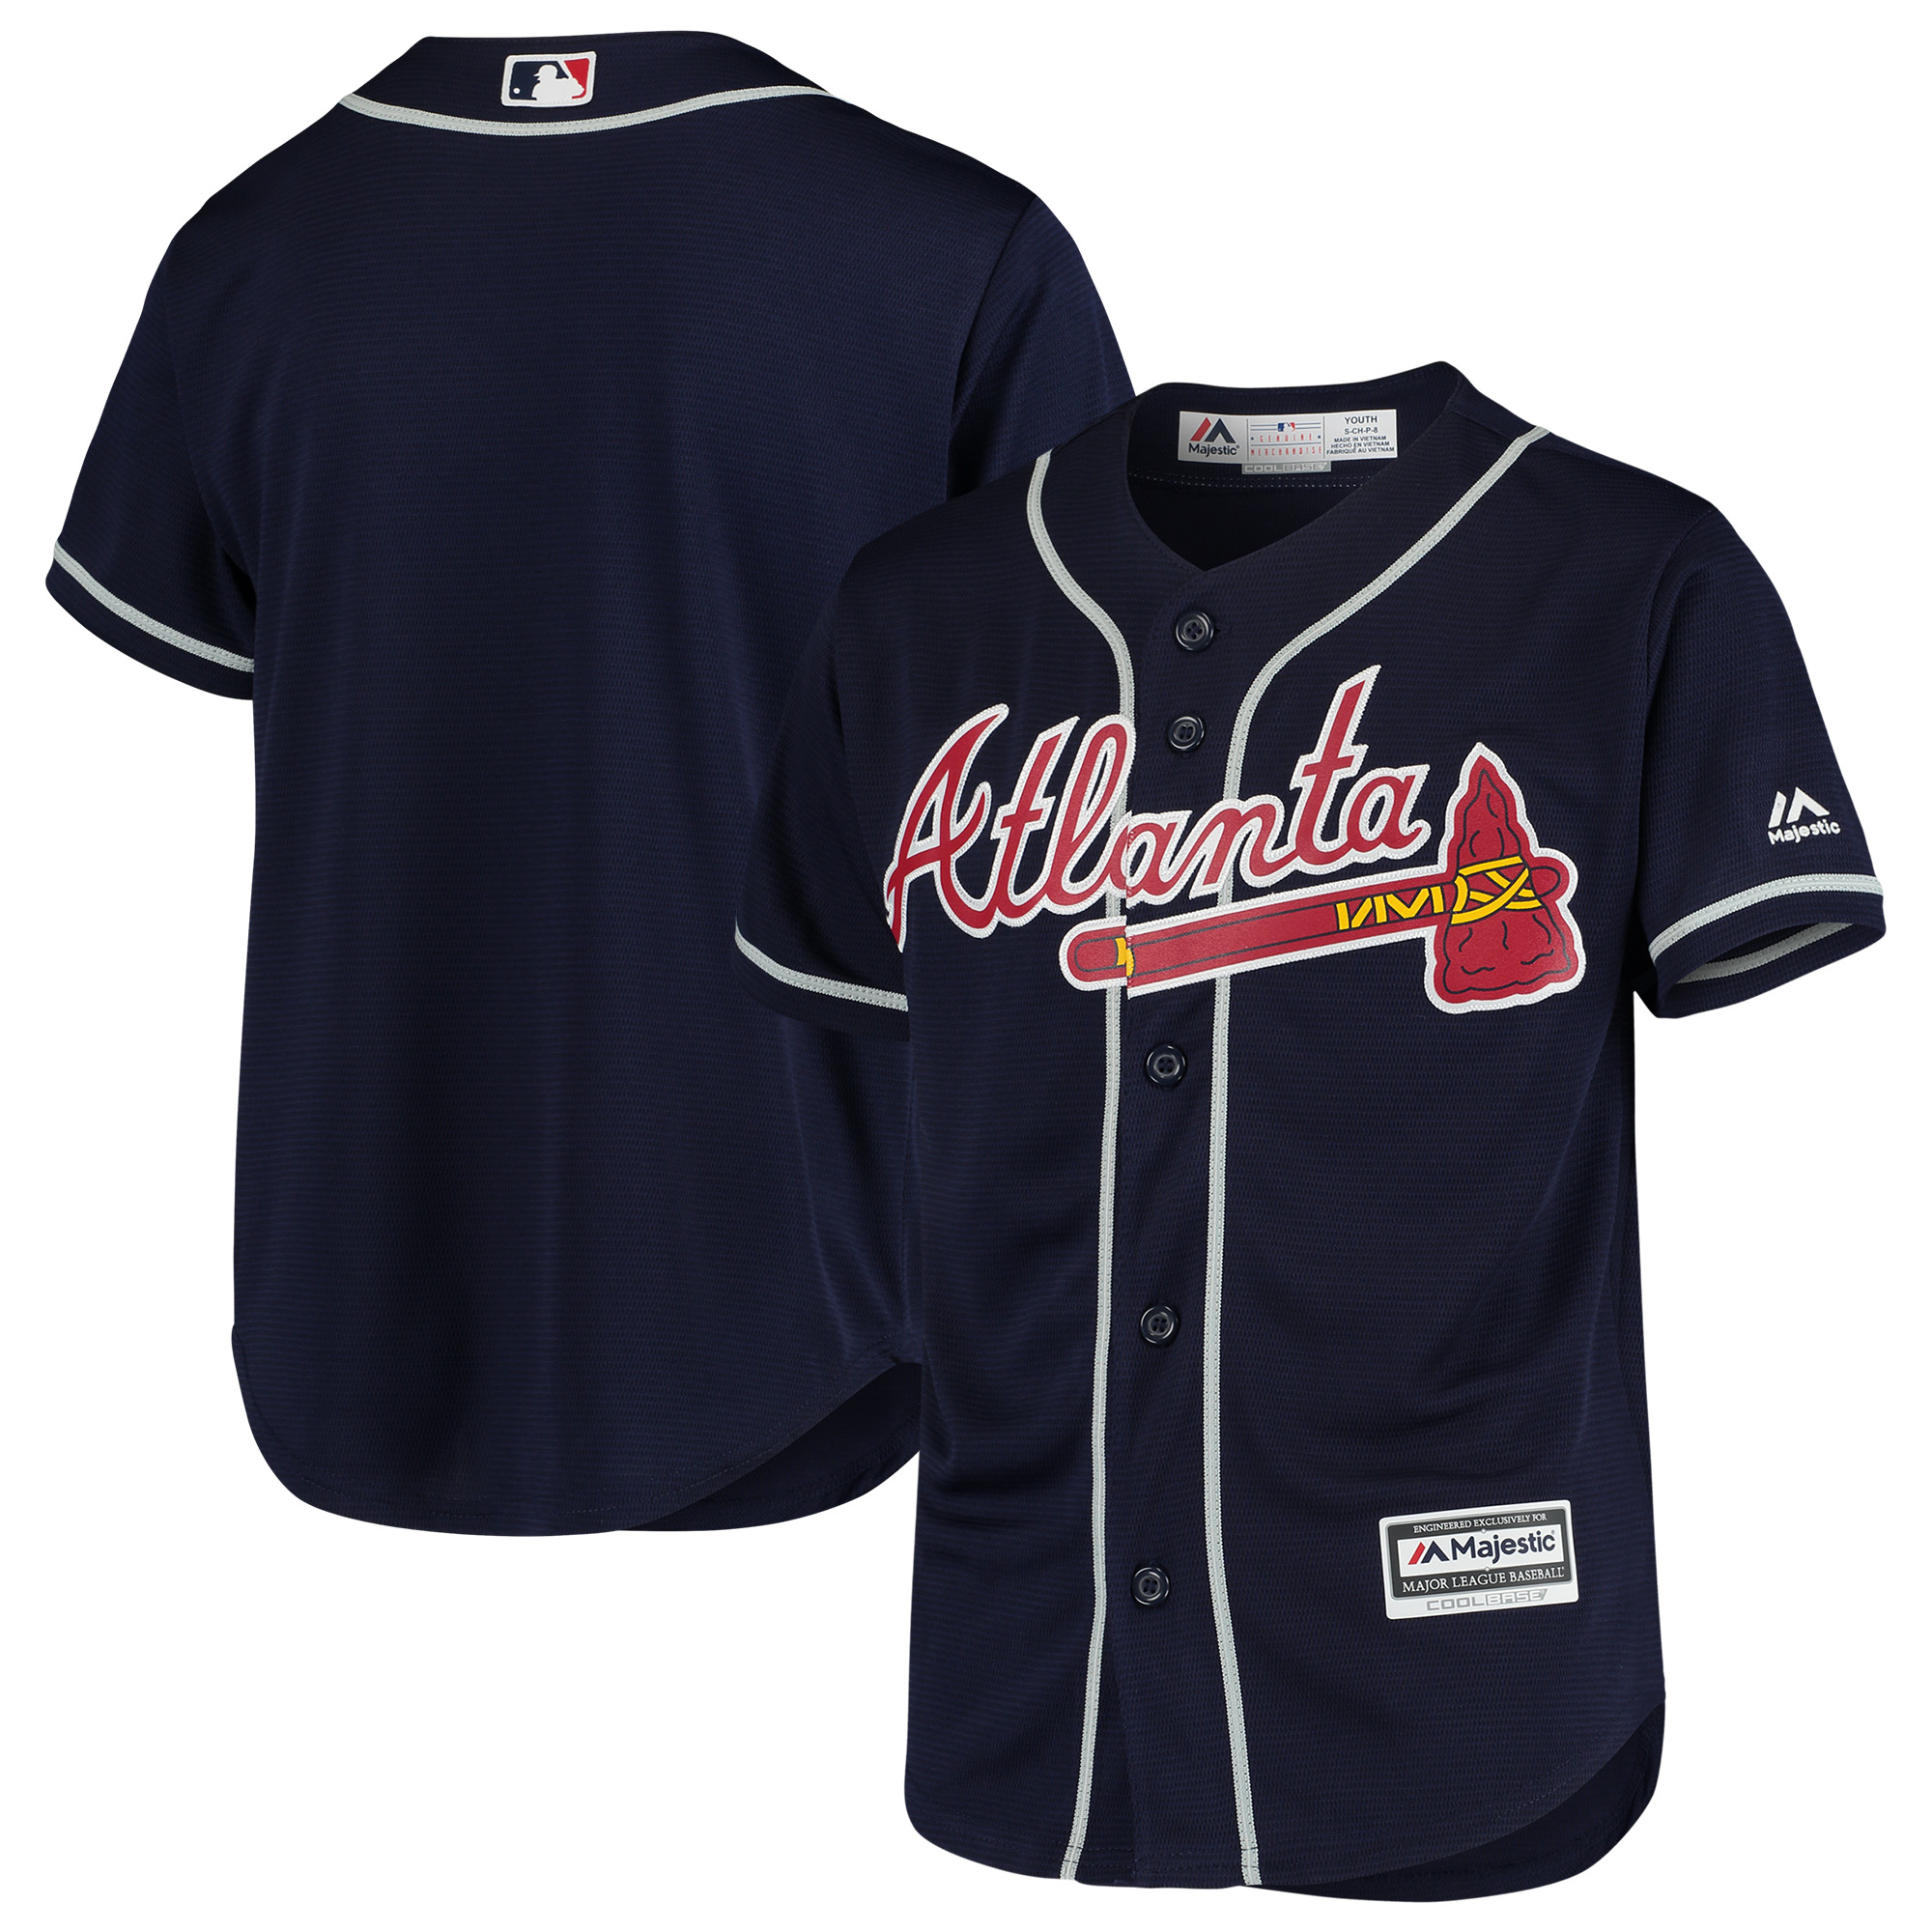 Atlanta Braves Majestic Youth Official Cool Base Team Jersey - Navy